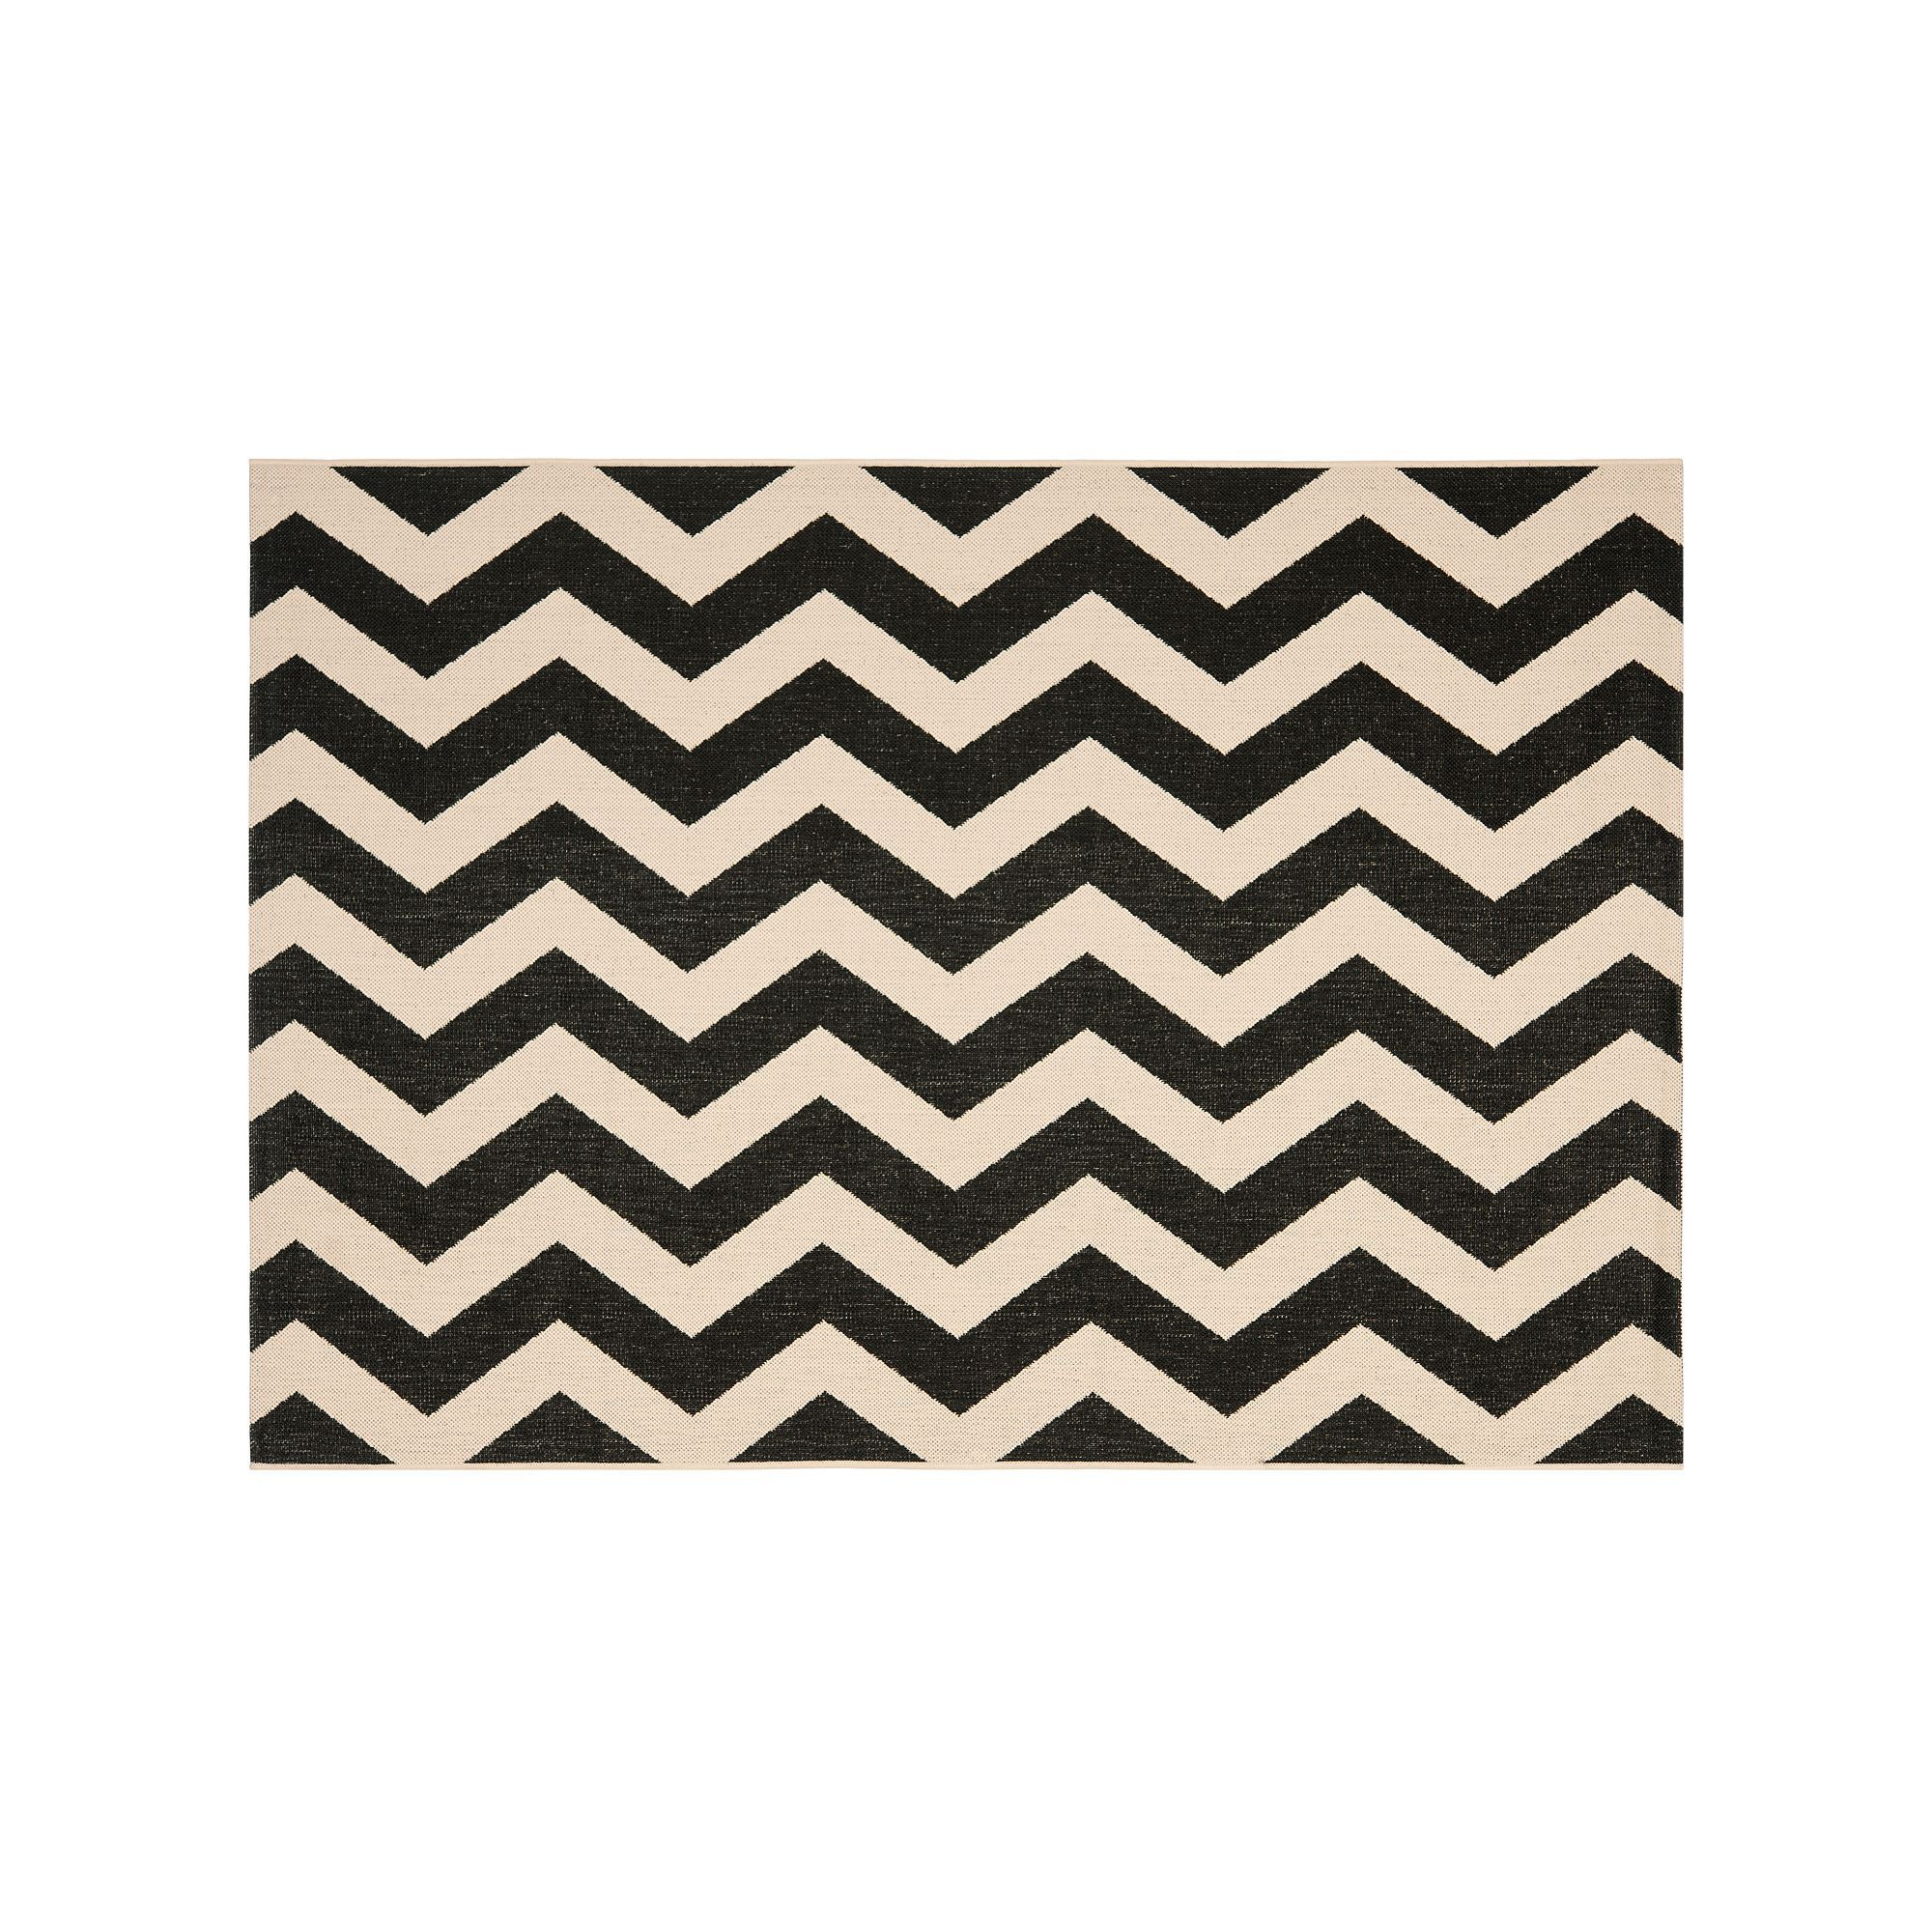 Safavieh Courtyard Foxtrot Chevron Indoor Outdoor Rug, Black, Durable